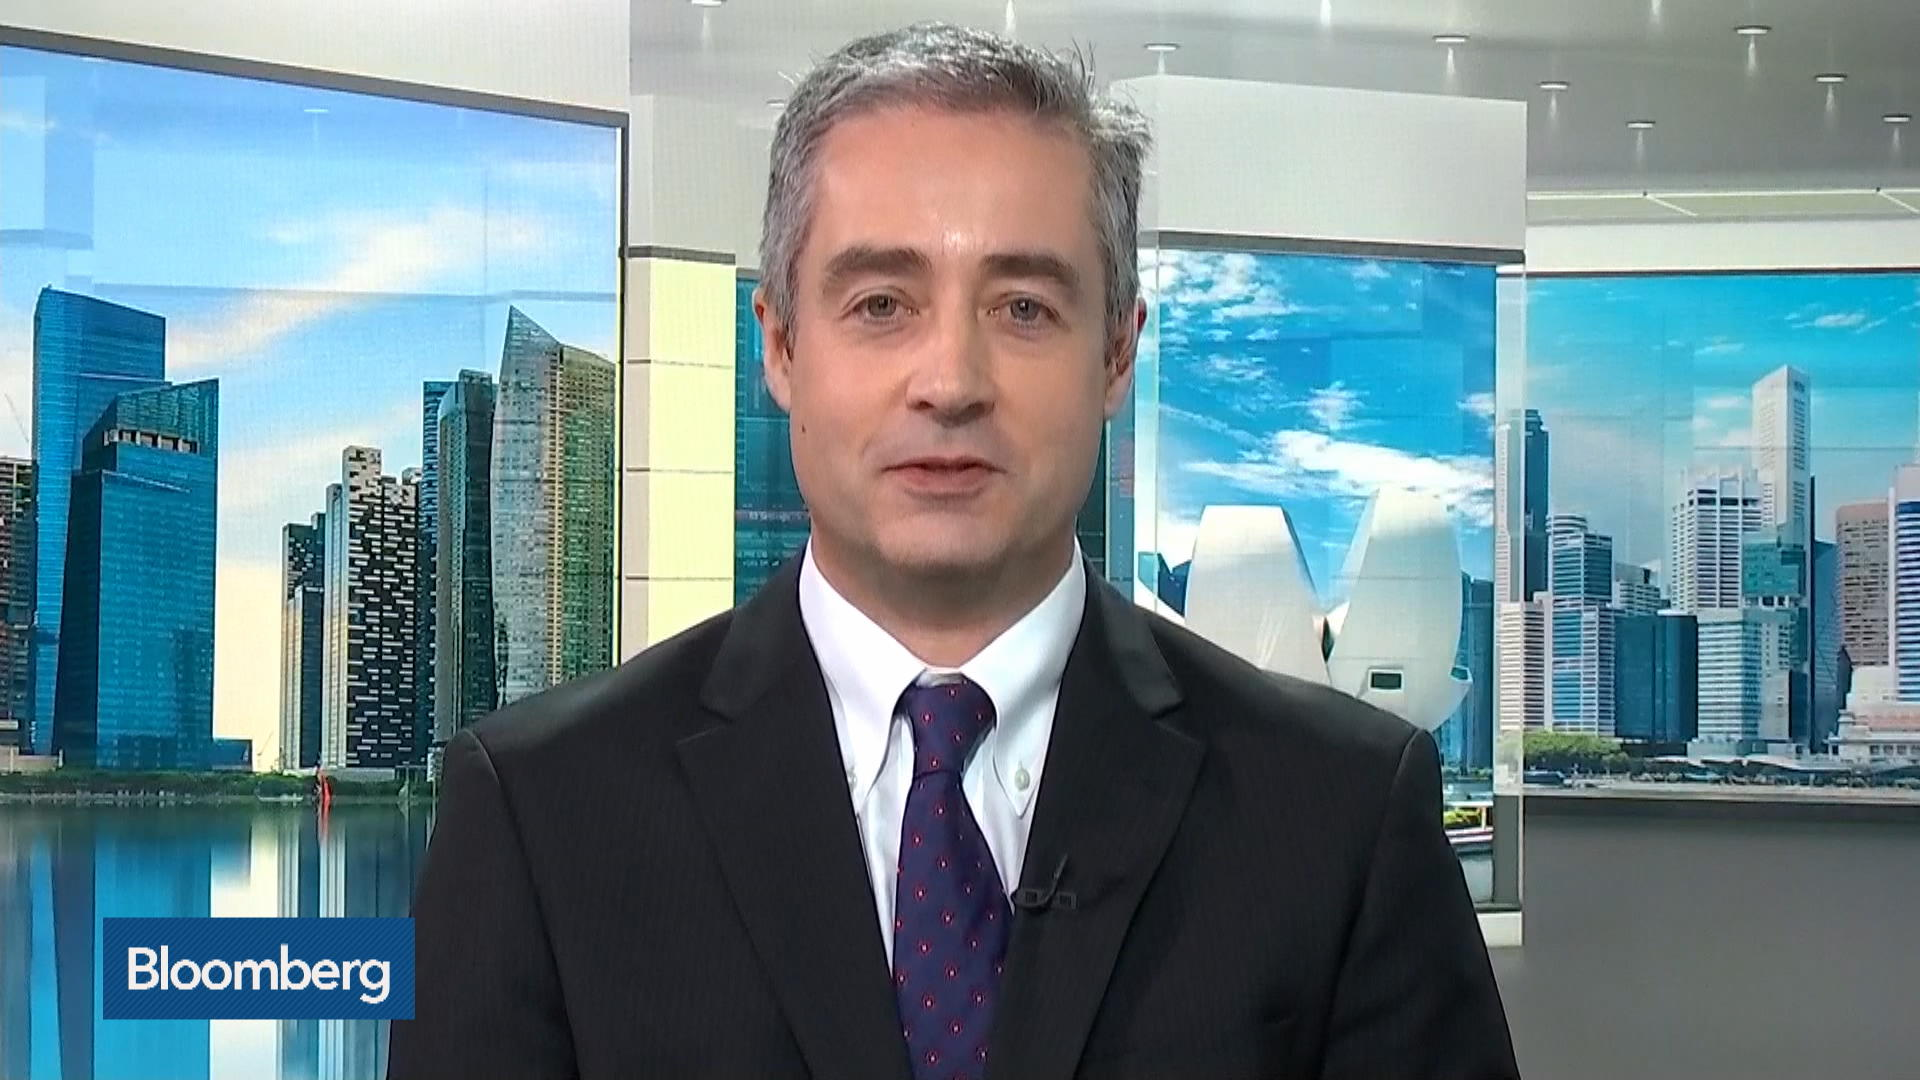 UBP's Calder: Want to Add Risk in China